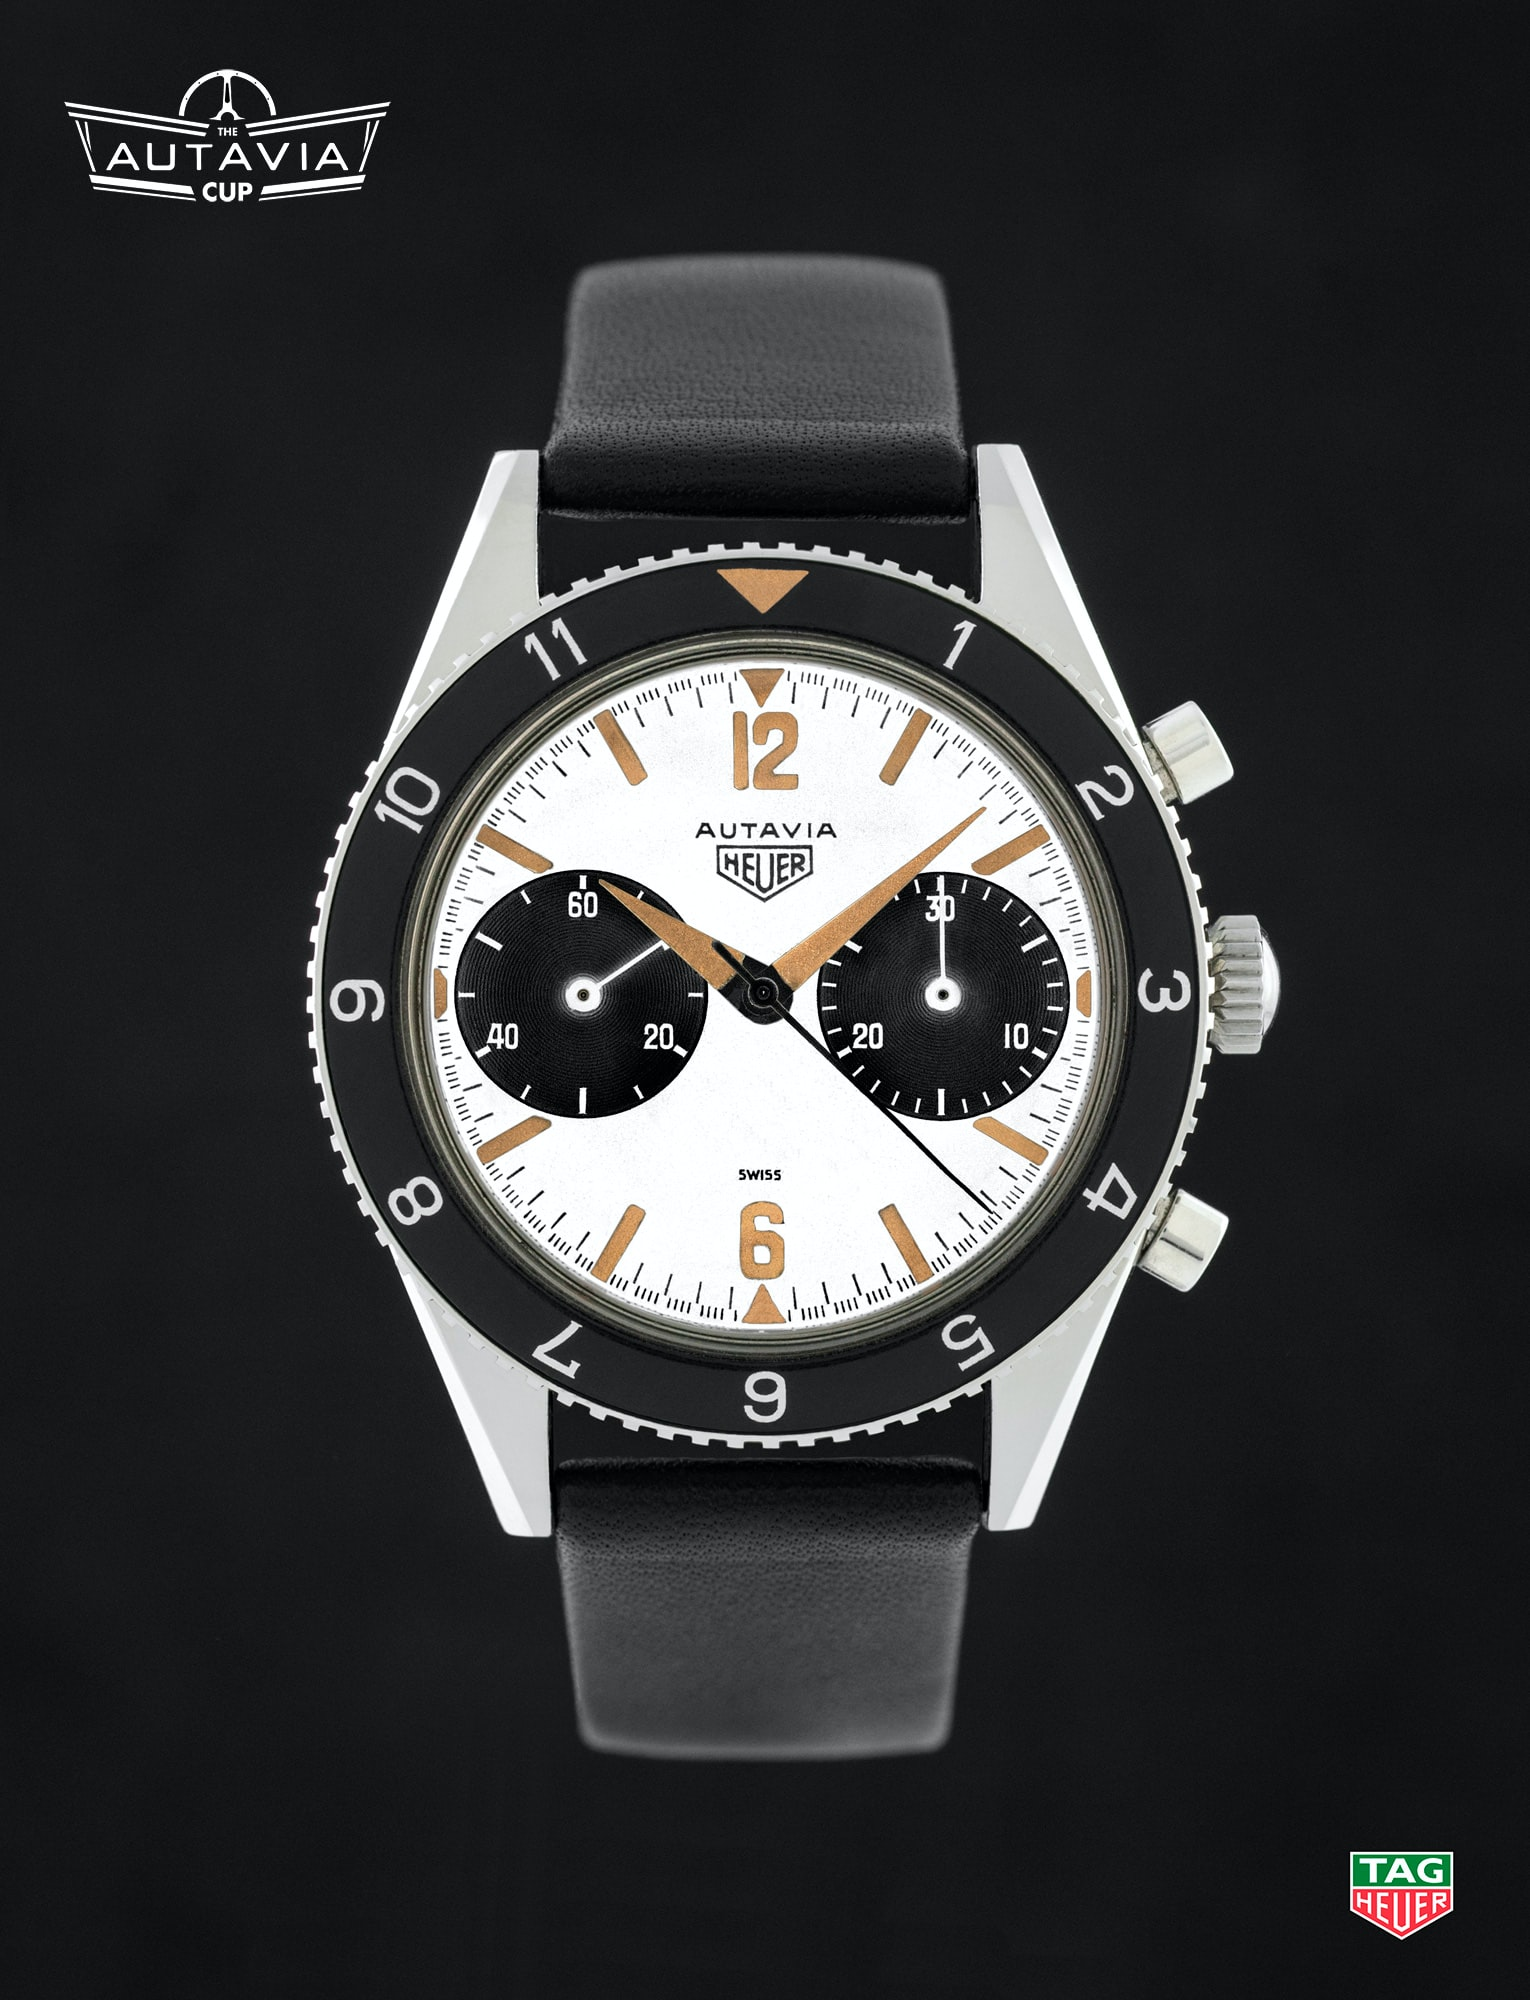 Heuer  TAG Heuer Will Relaunch The Autavia In 2017 – And Fans Get To Choose The Model TAG Heuer Will Relaunch The Autavia In 2017 – And Fans Get To Choose The Model 14 3646 Mk1 SN